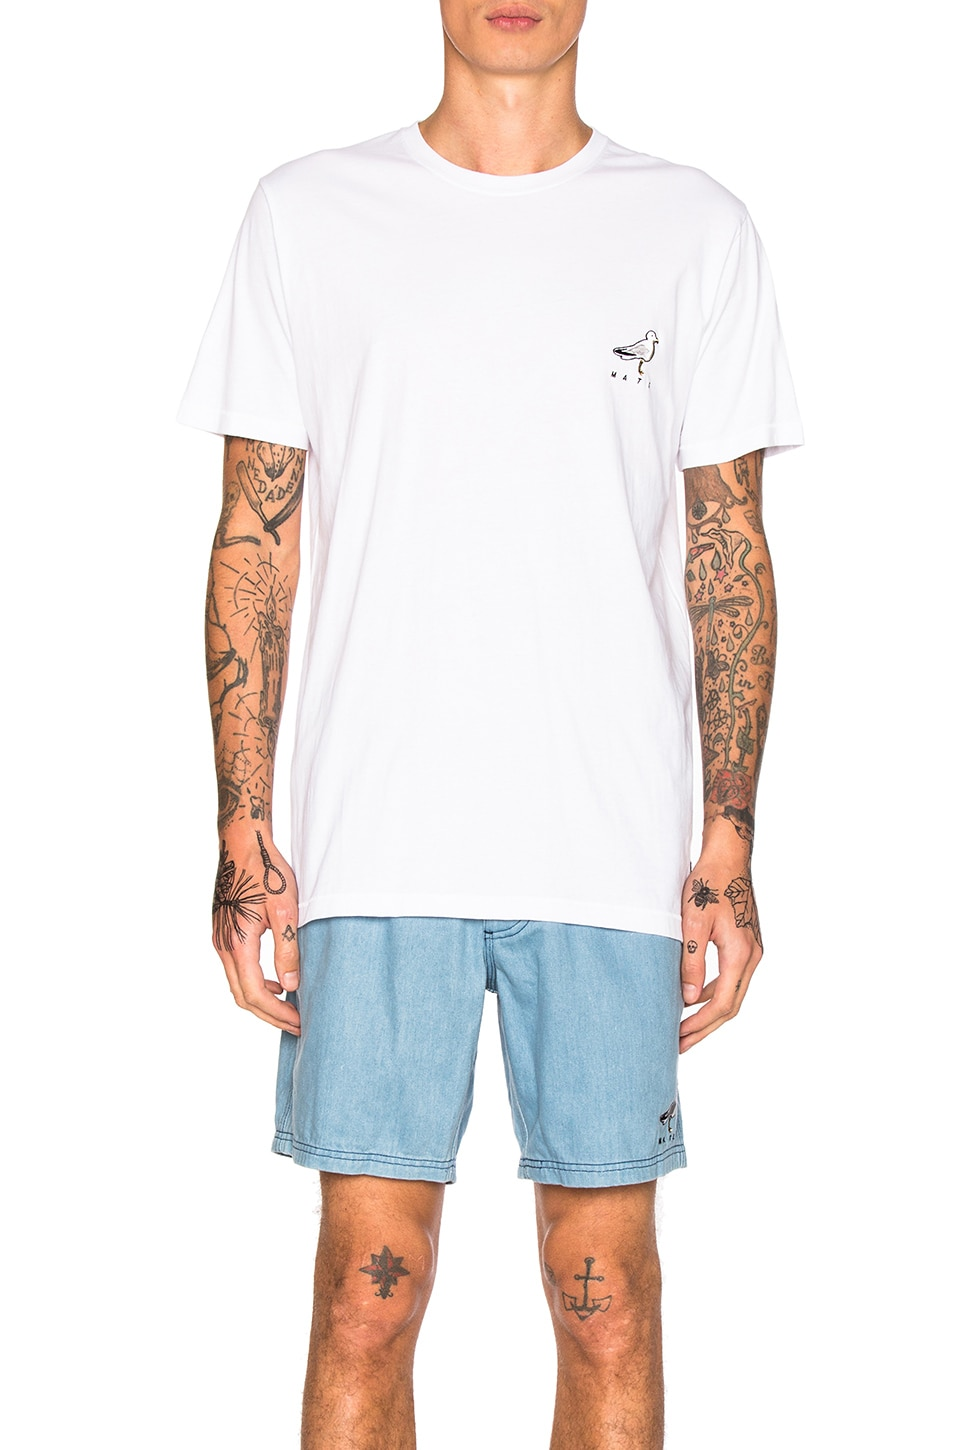 Seagull Mate Tee by Barney Cools